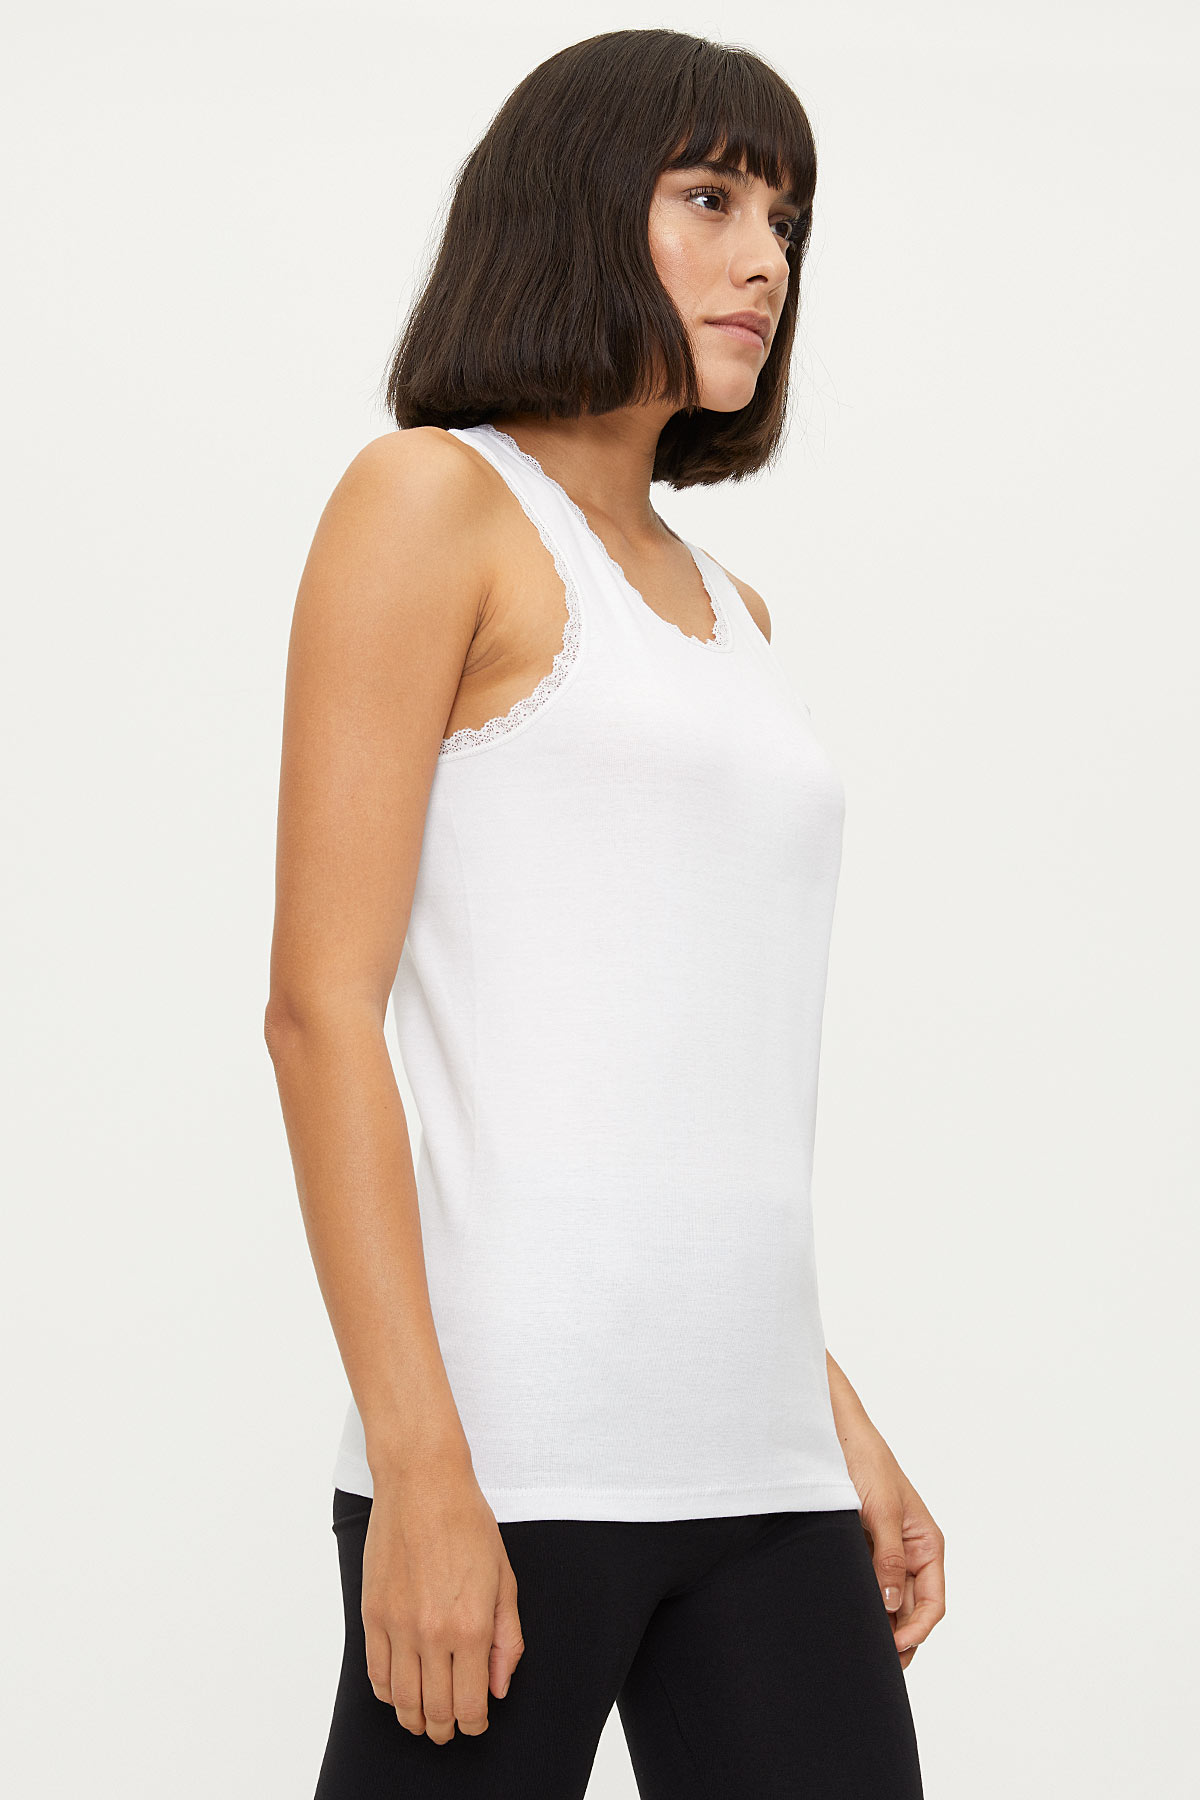 1034 100% Cotton Wide Strappy Lace Women's Undershirt - Thumbnail